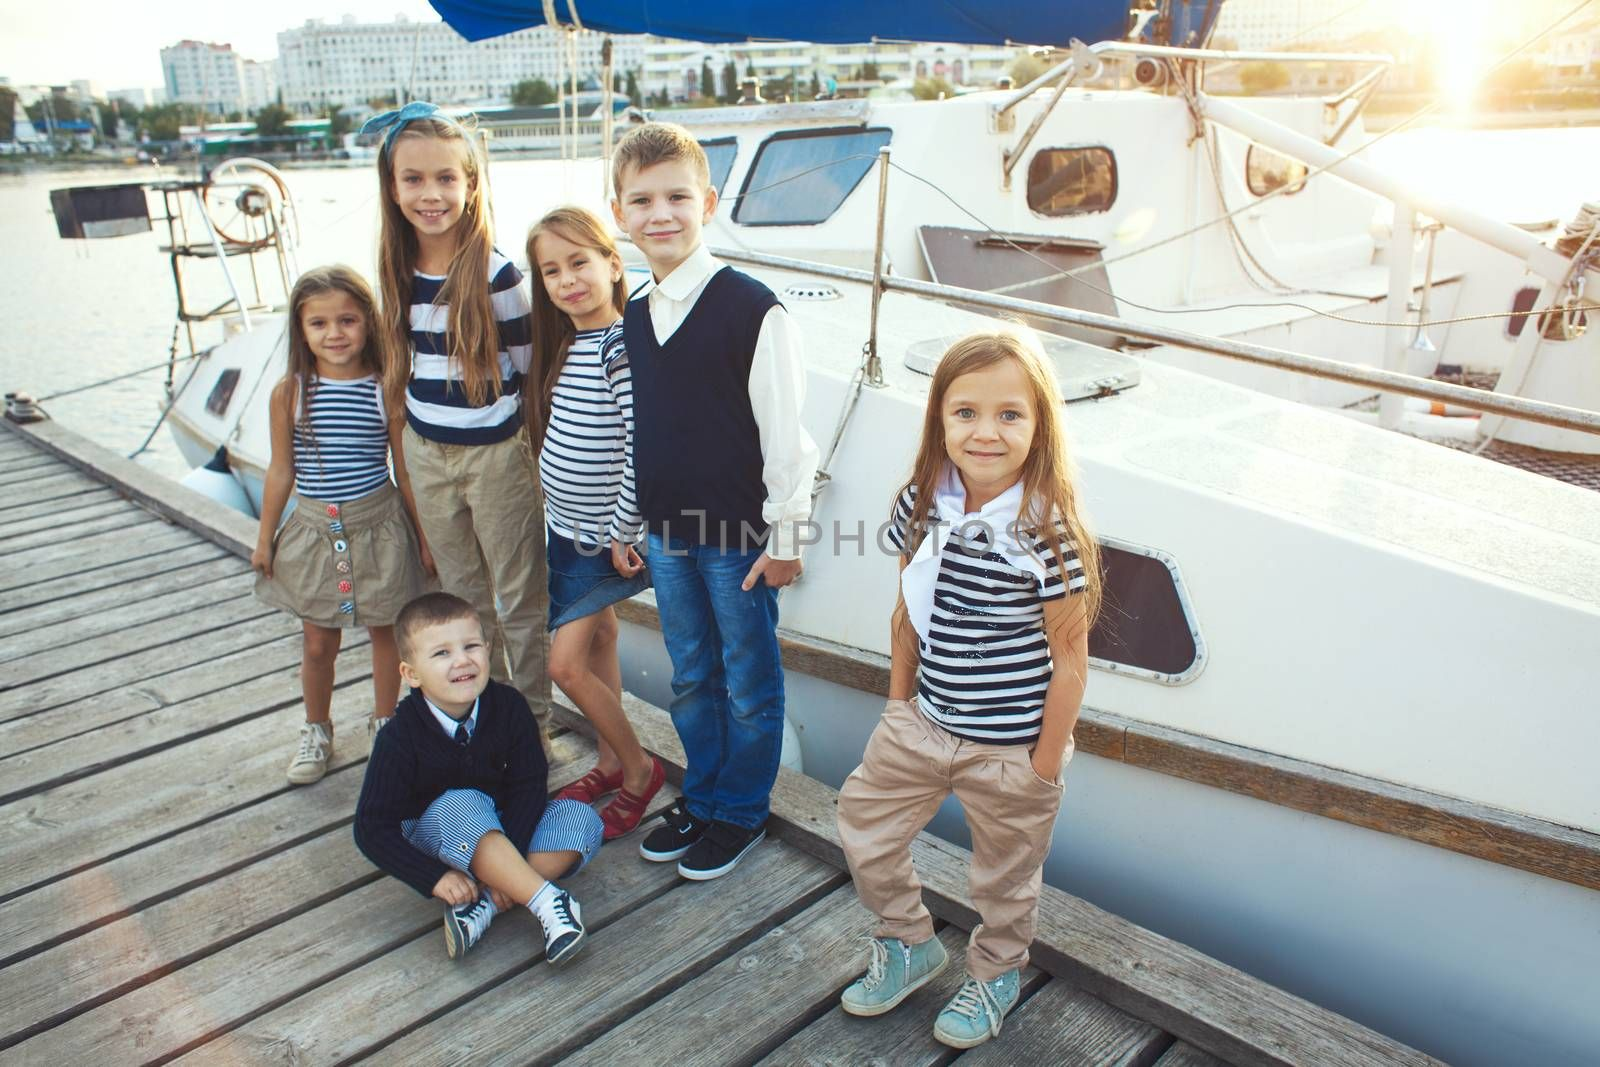 Many fashion kids models wearing navy clothes in marine style walking in the sea port near white fashionable yacht